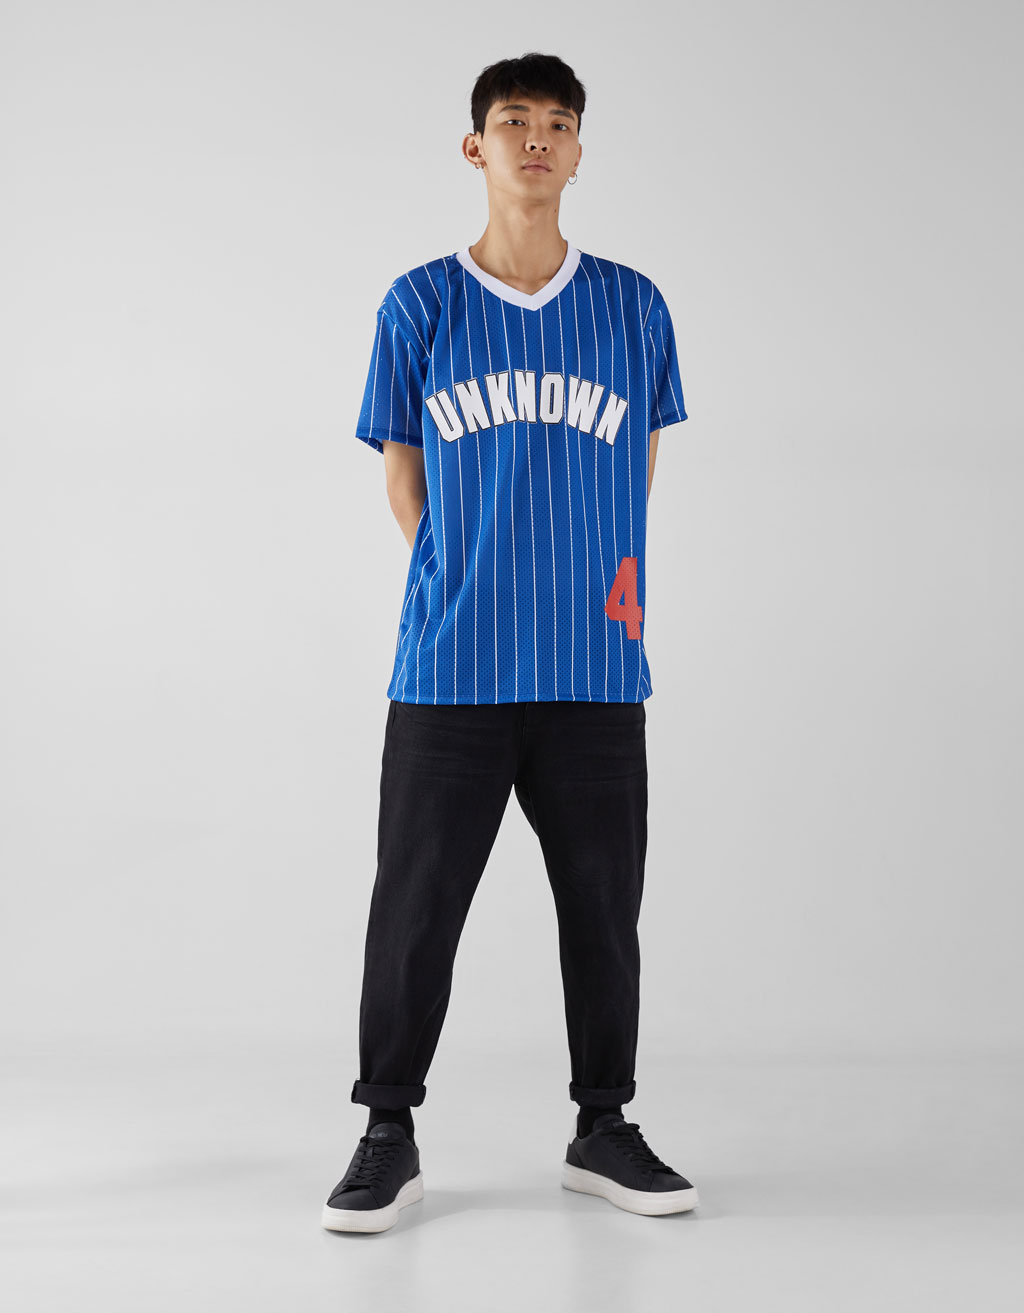 UNKNOWN mesh baseball T-shirt